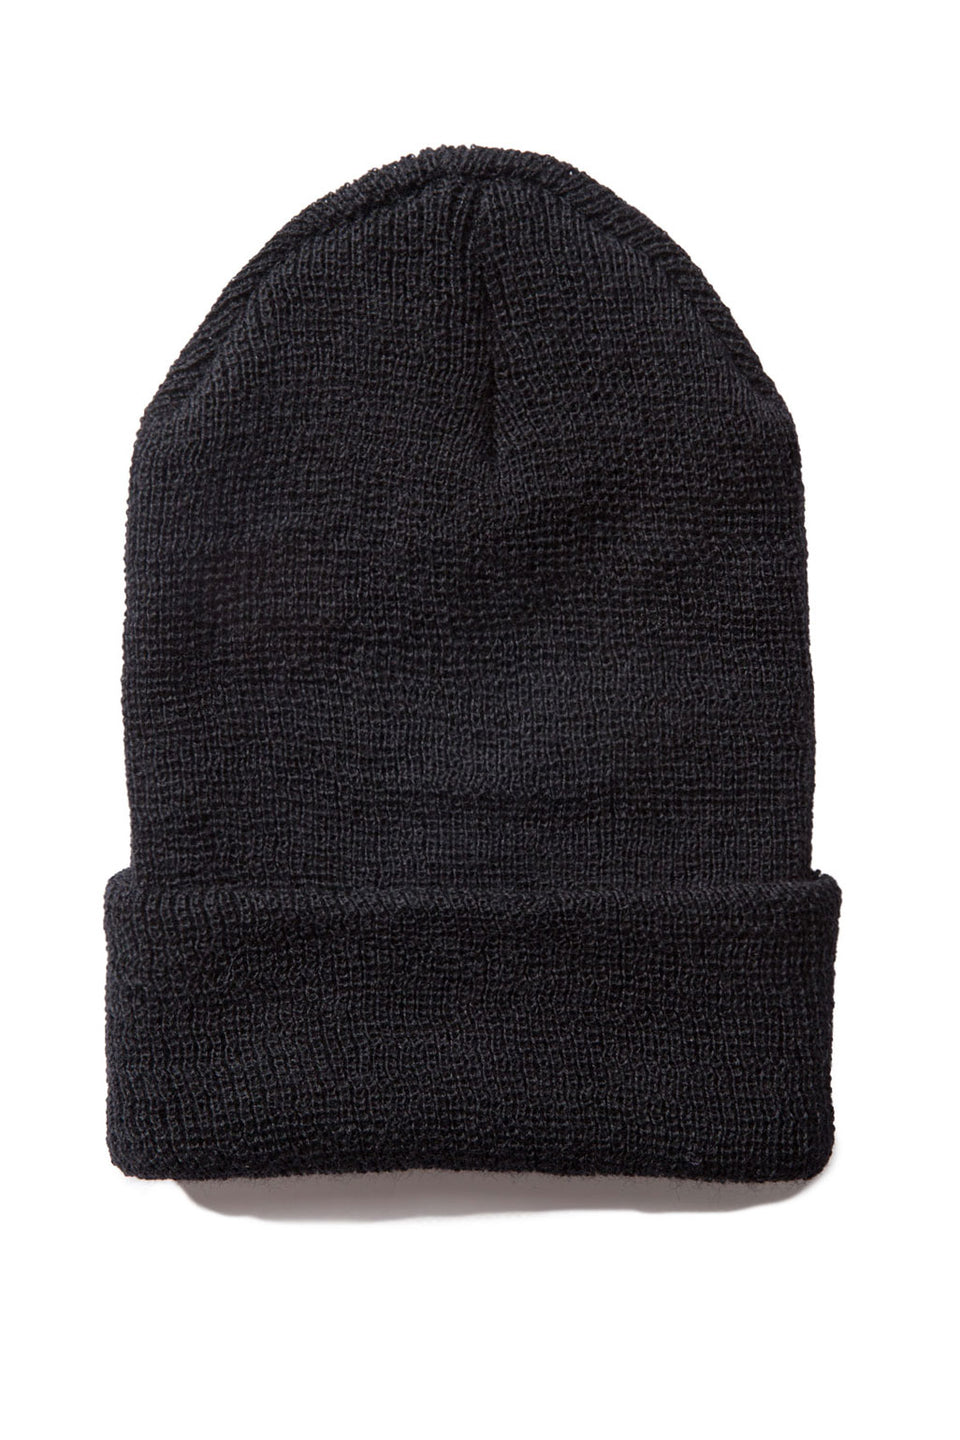 Usugrow LA Beanie-HEADWEAR-The Hundreds UK